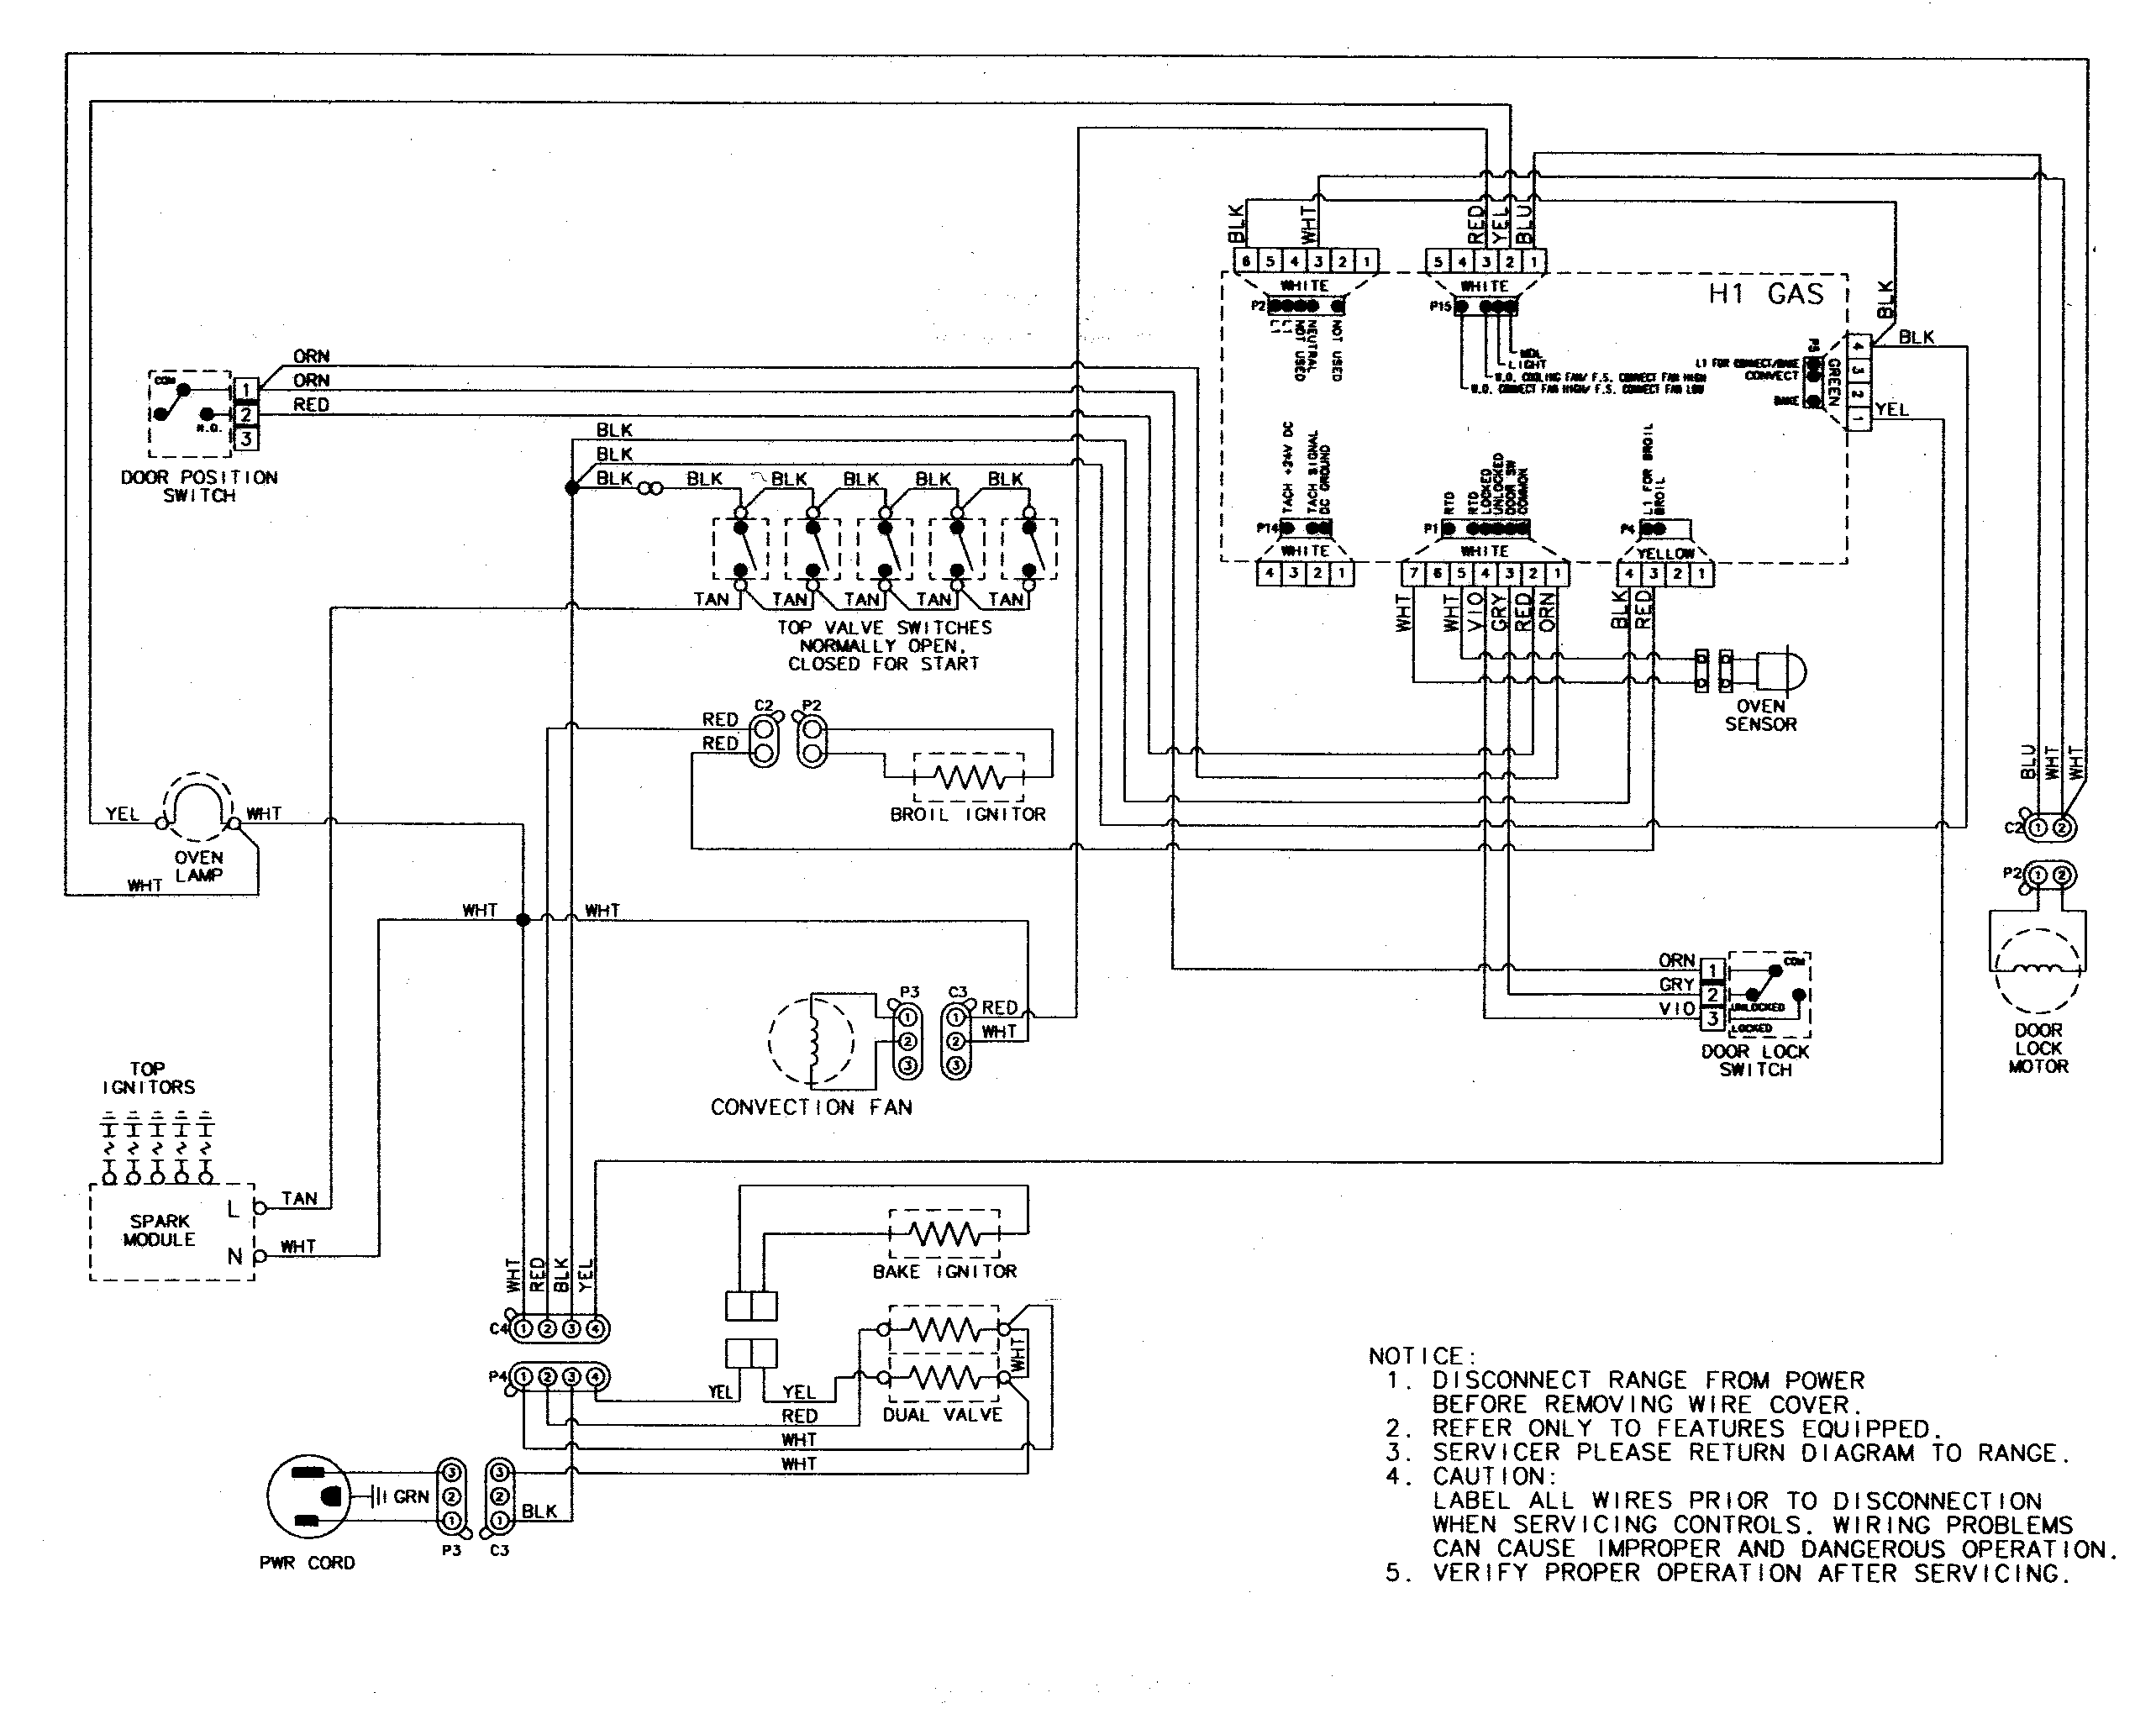 whirlpool dryer wiring diagram gas wiring diagrams and schematics dryer wiring diagram diagrams